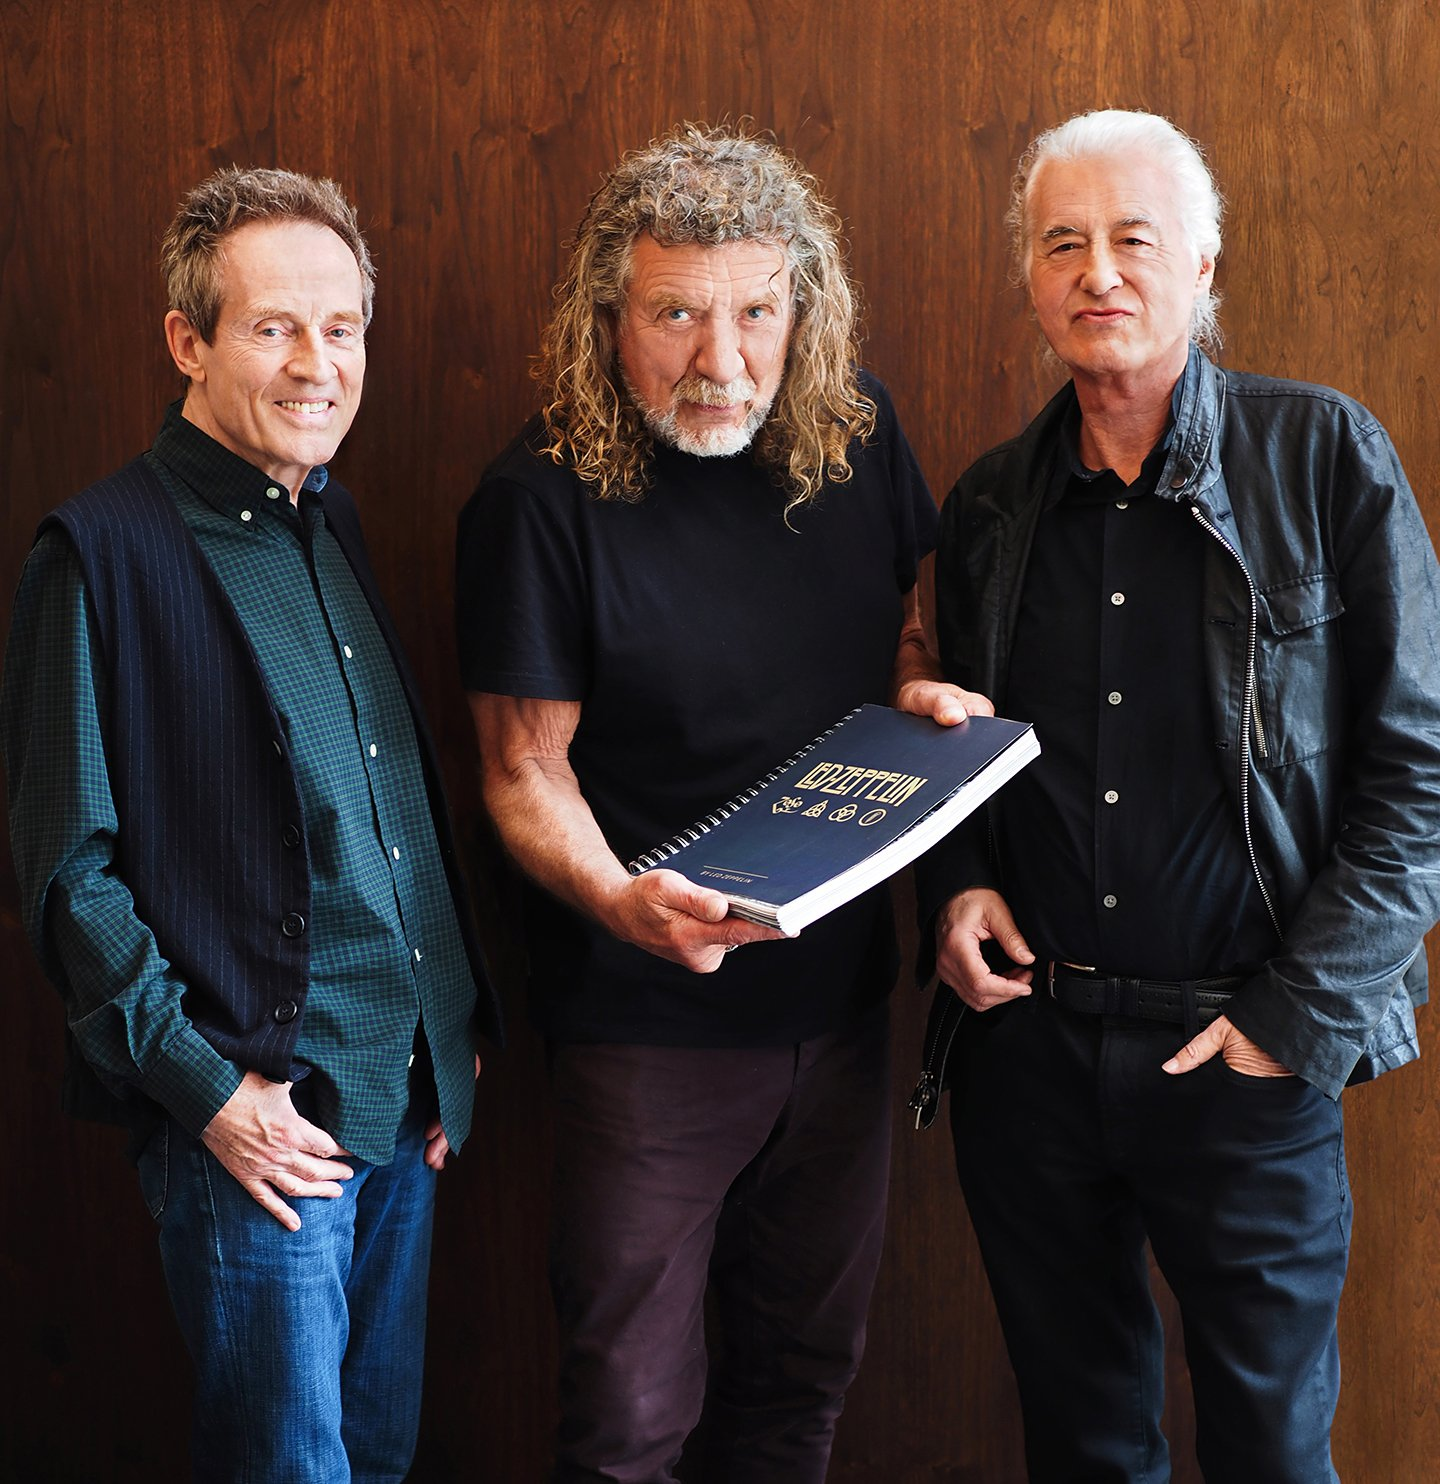 Rolling Stones Tour 2020 Rumors Led Zeppelin Reunion Rumors: Plant & Page 'In Talks' | Best